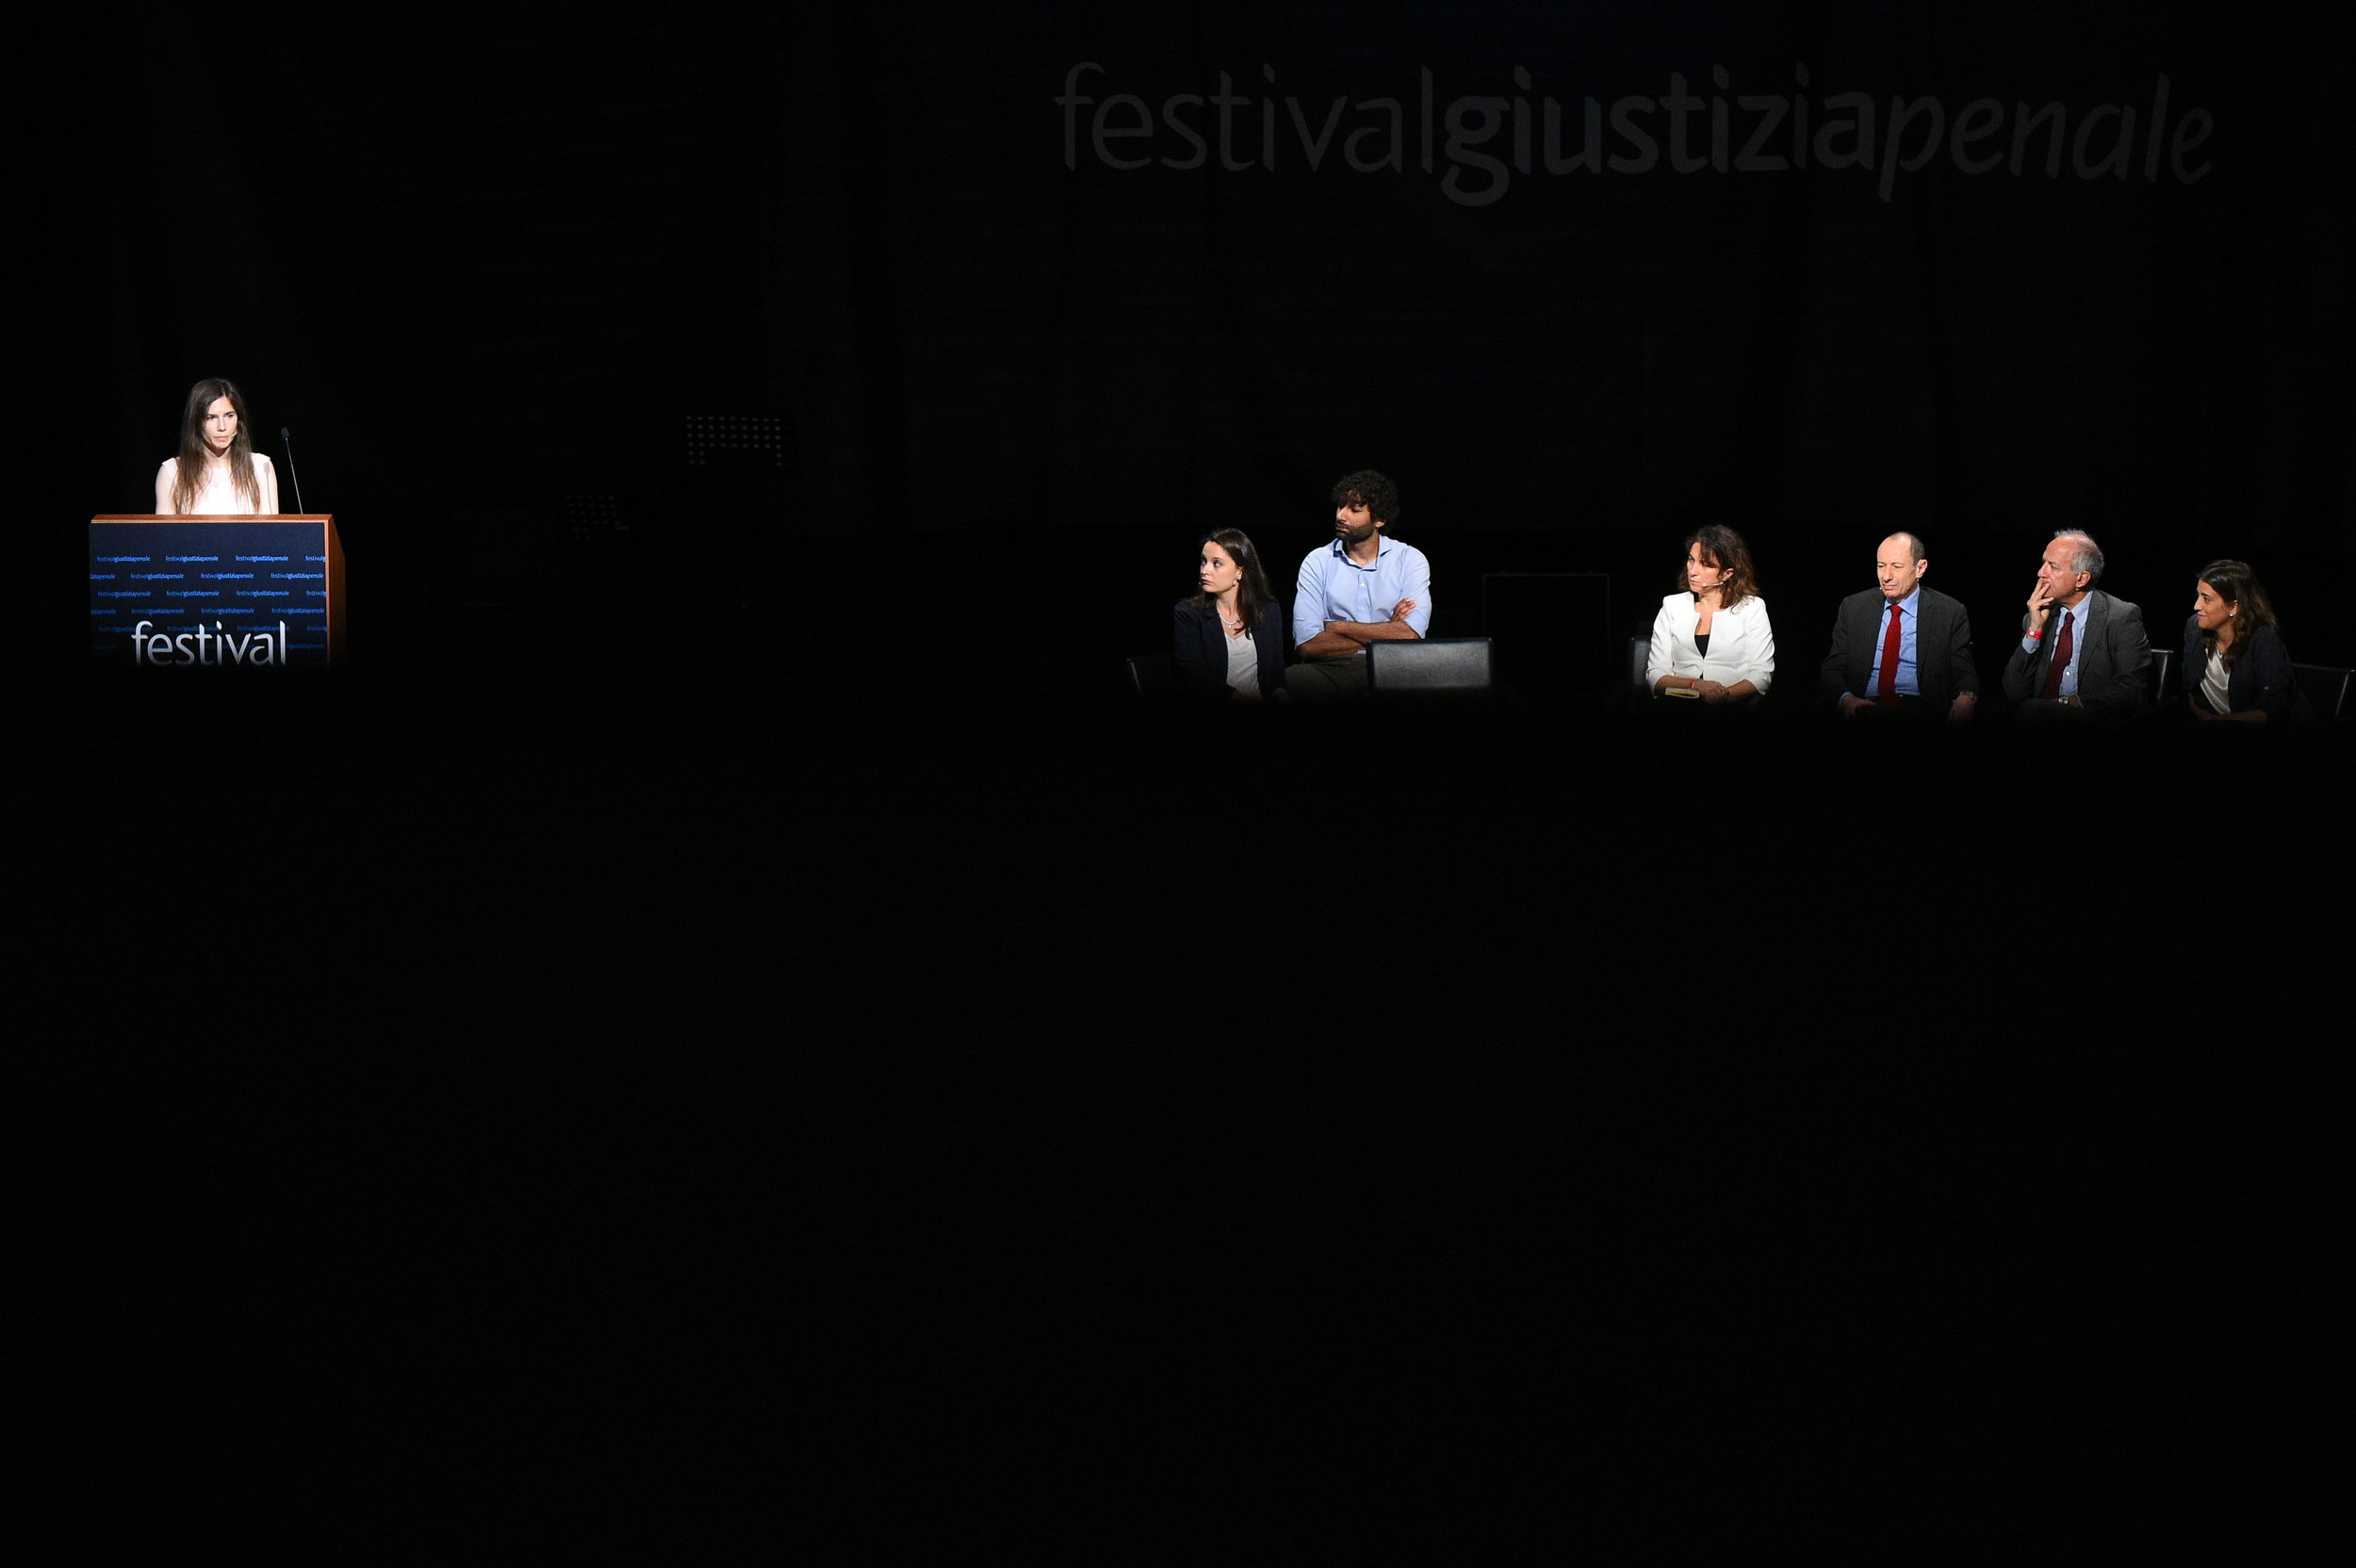 Amanda Knox, who has returned to Italy for the first time since being cleared of the murder of British student Meredith Kercher, speaks at the Criminal Justice Festival in Modena, Italy, June 15, 2019.